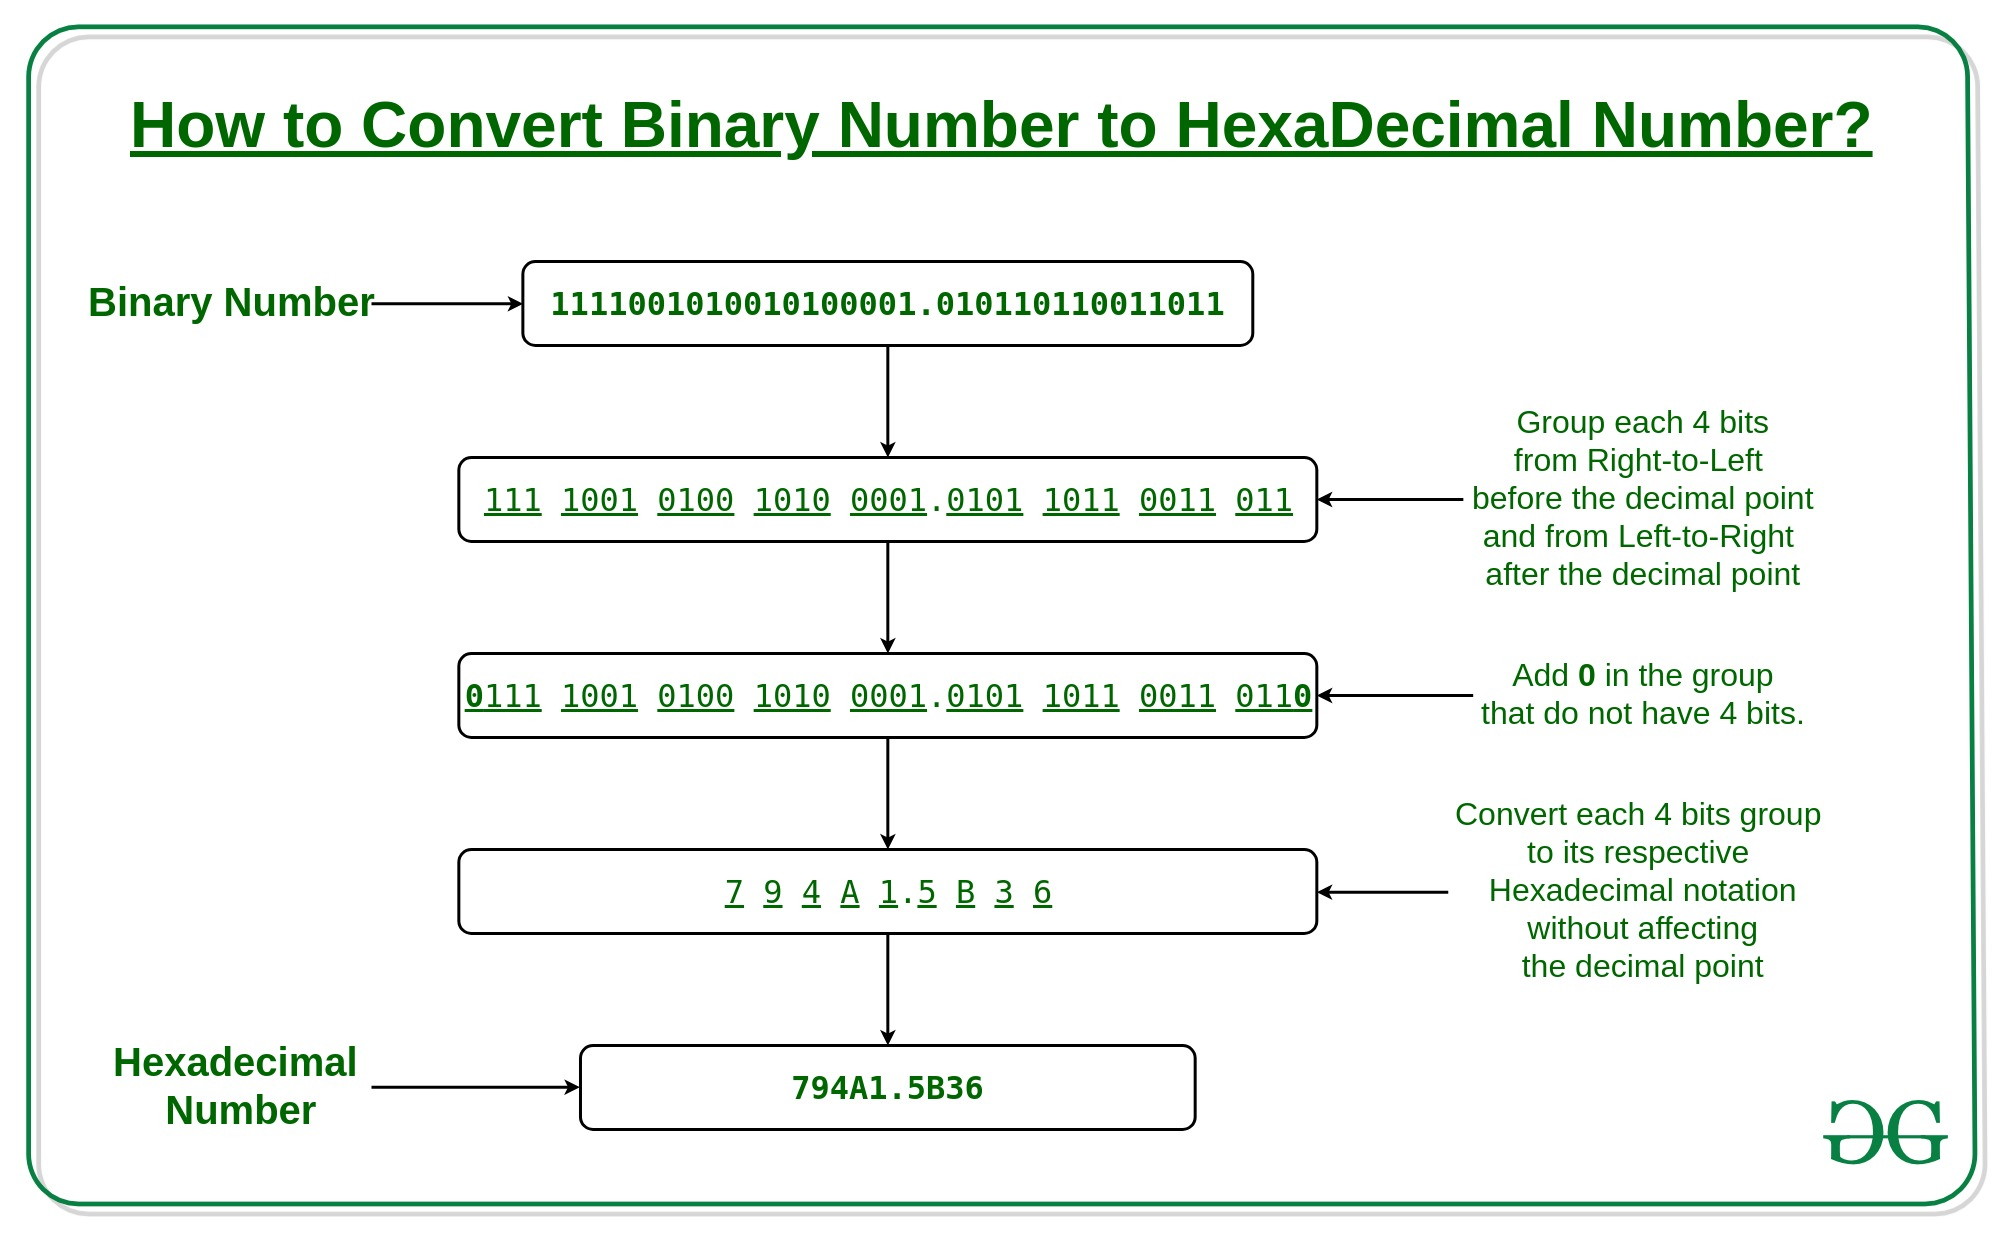 Convert A Binary Number To Hexadecimal Number